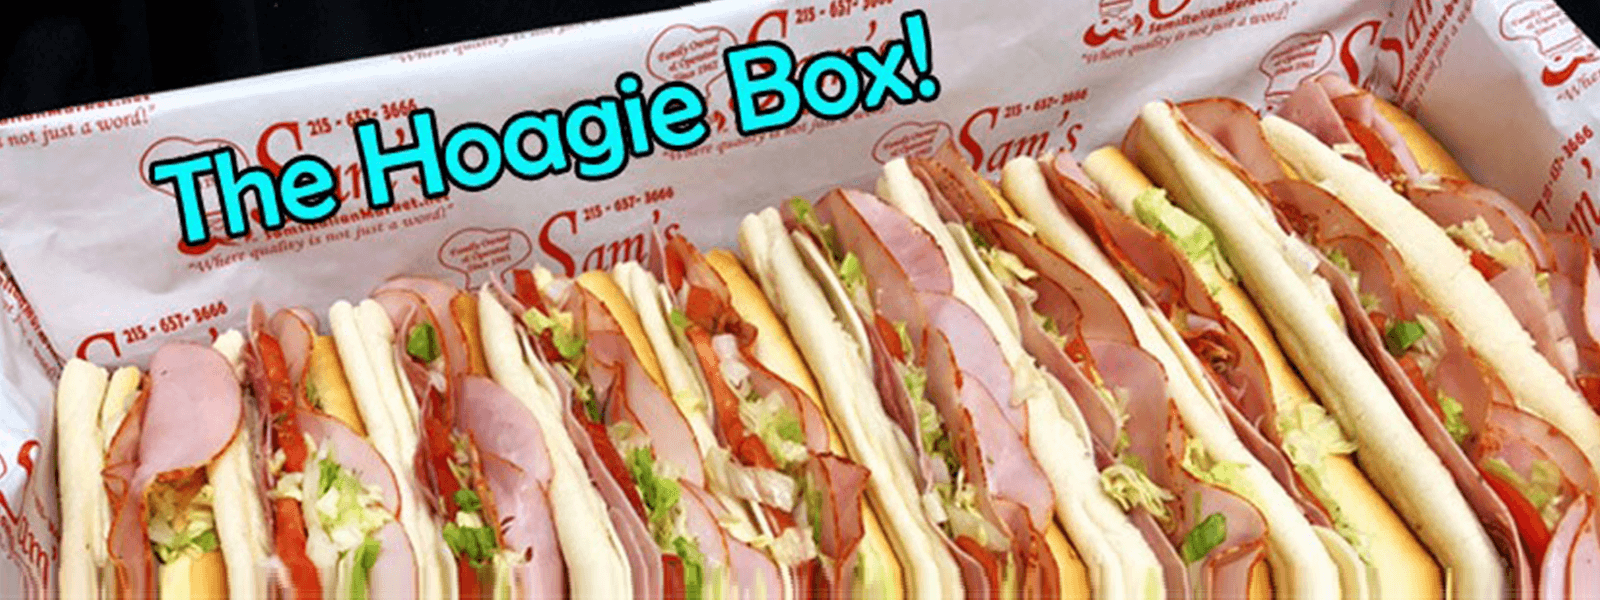 THE HOAGIE BOX